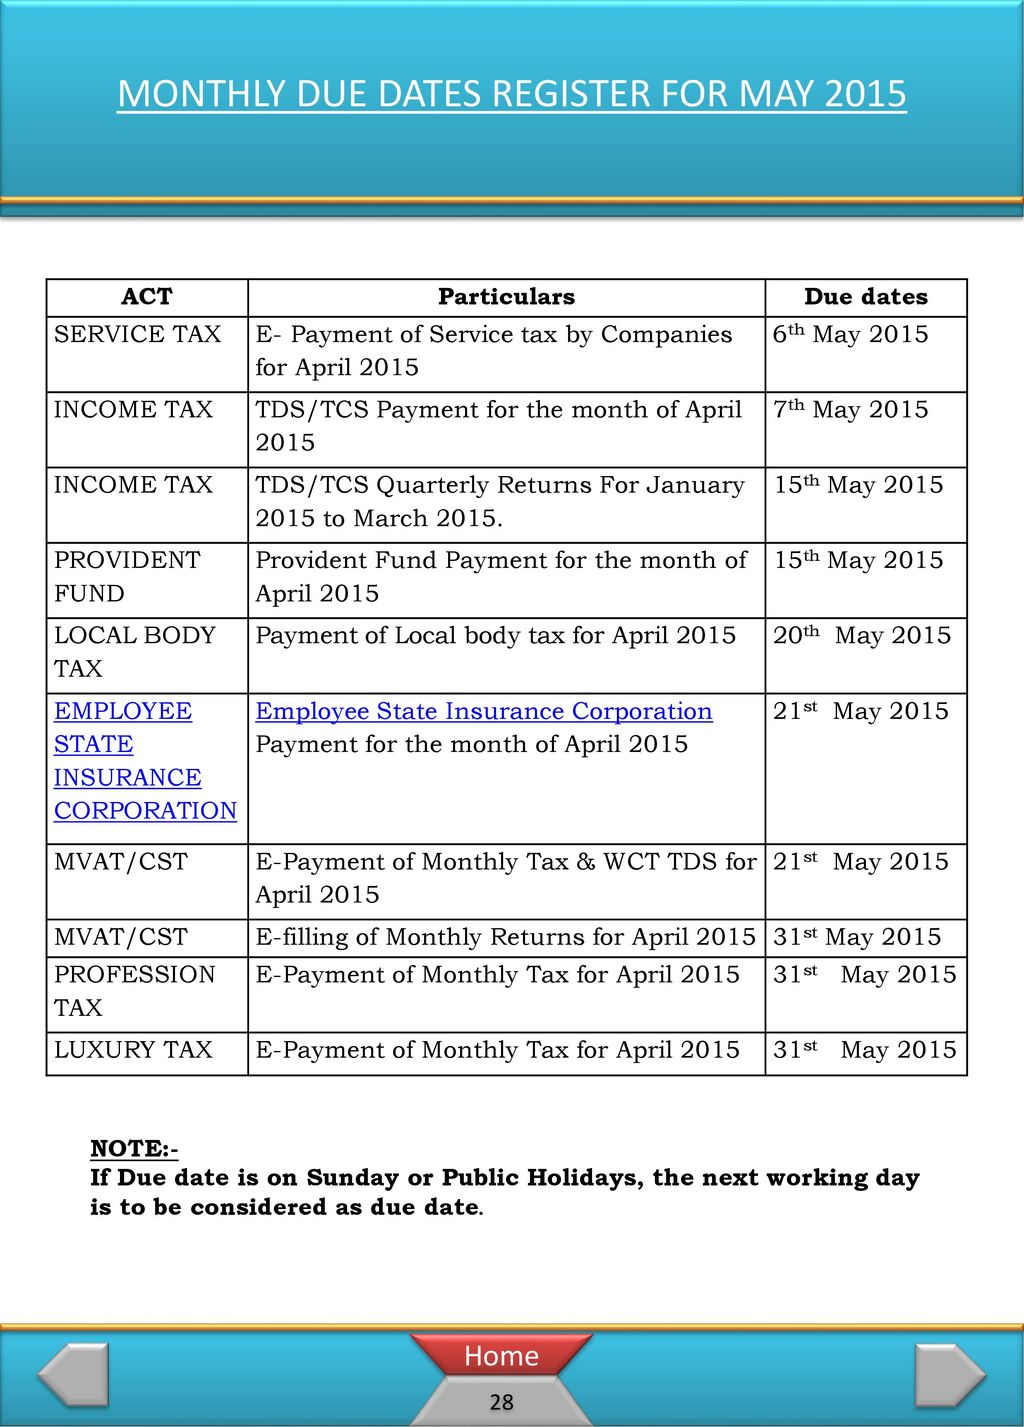 MONTHLY DUE DATES REGISTER FOR MAY 2015